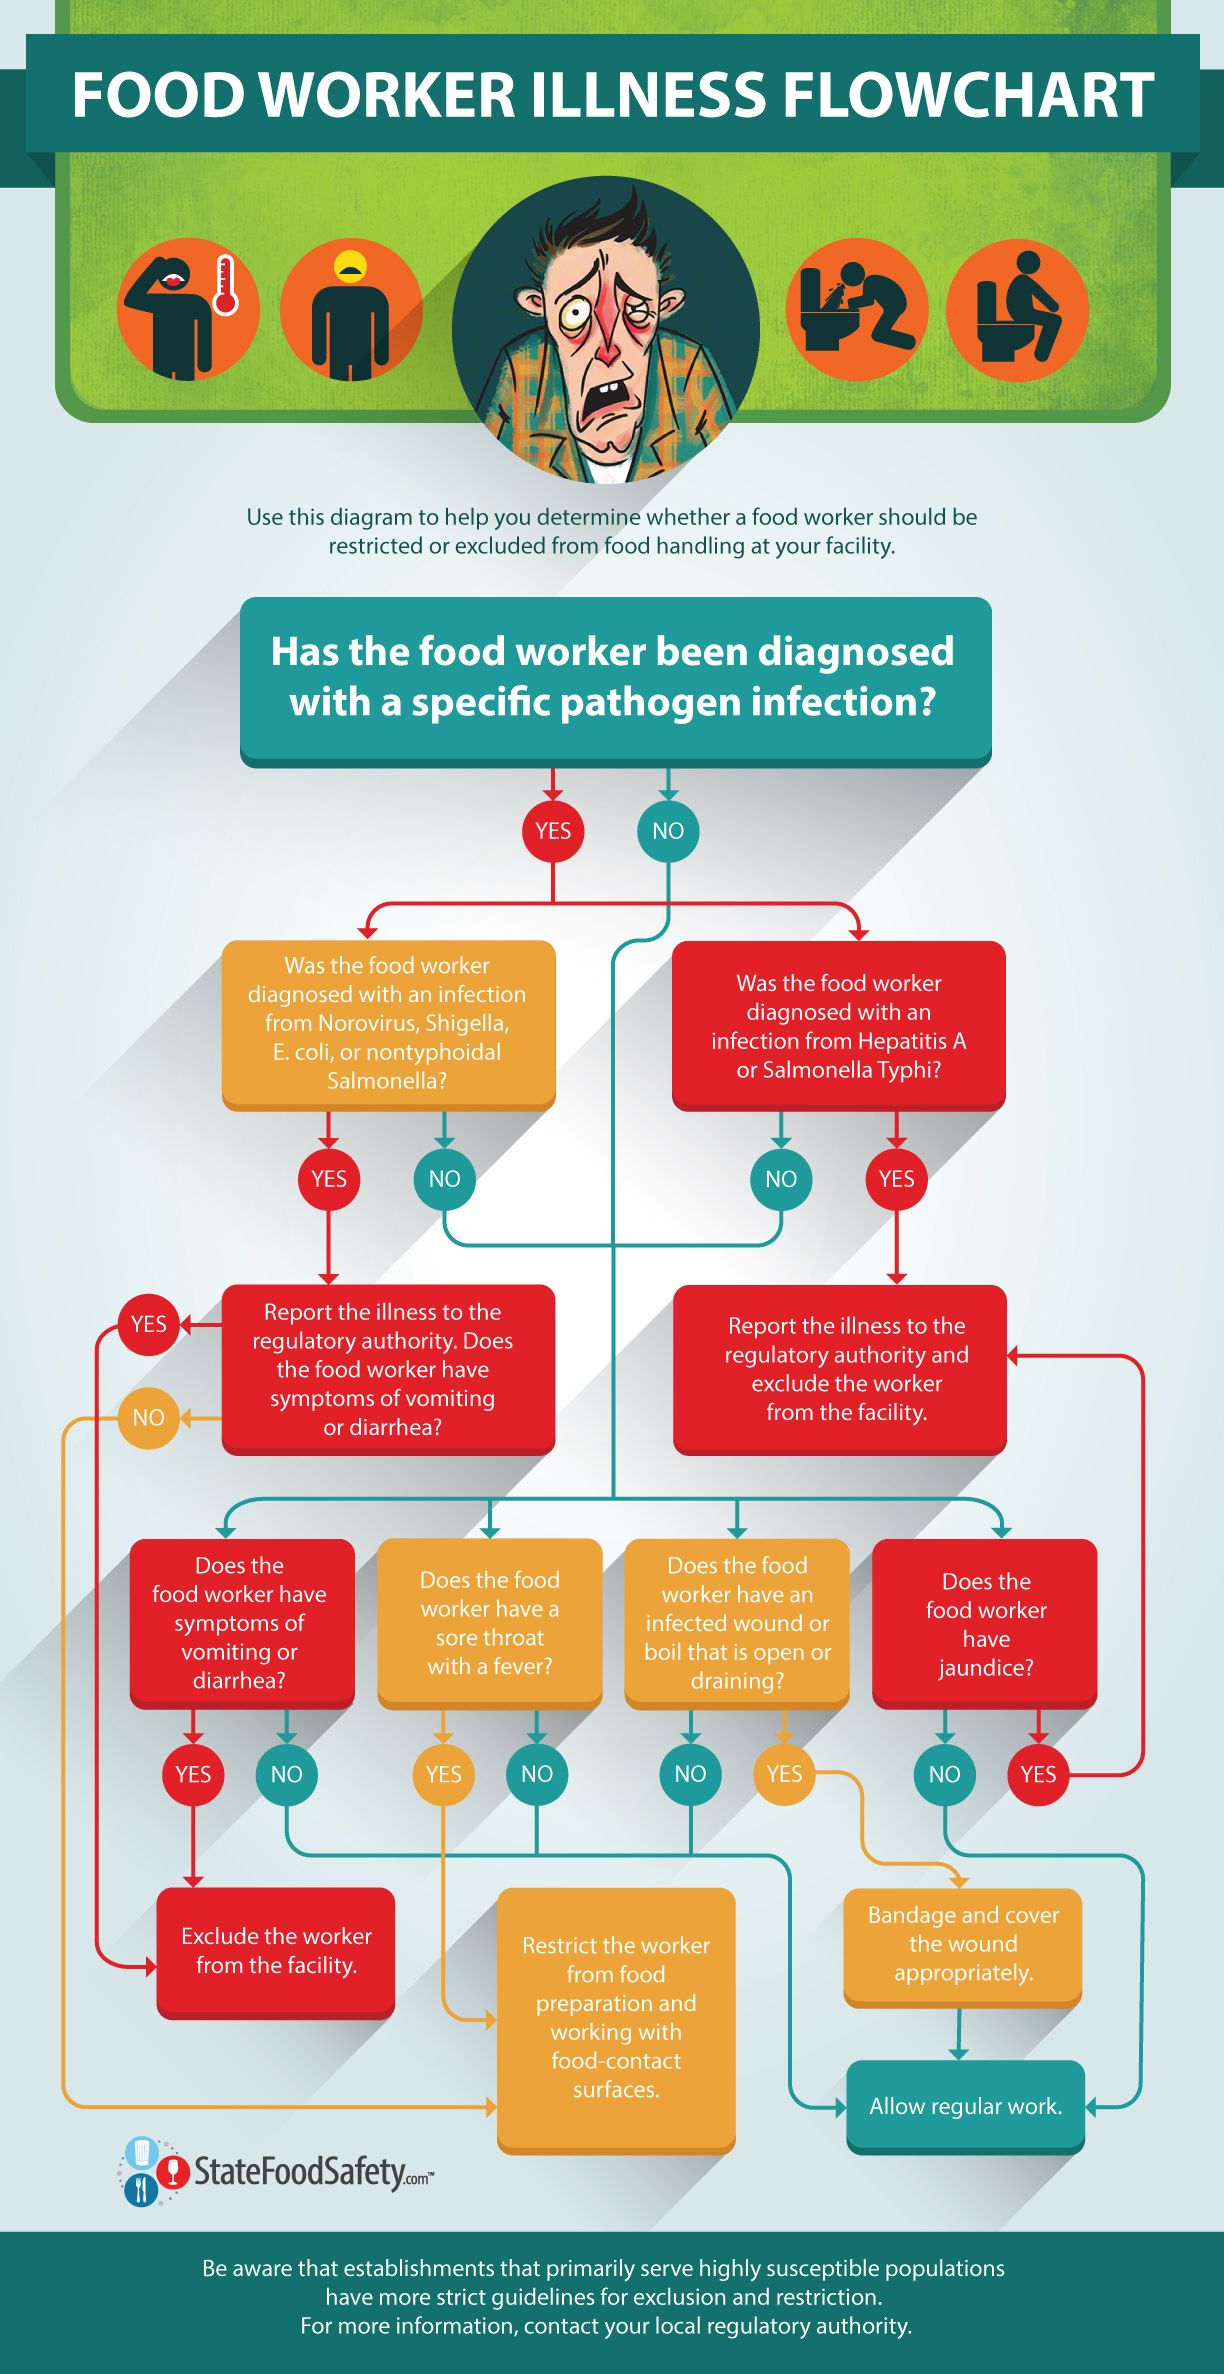 Food Worker Illness Flowchart